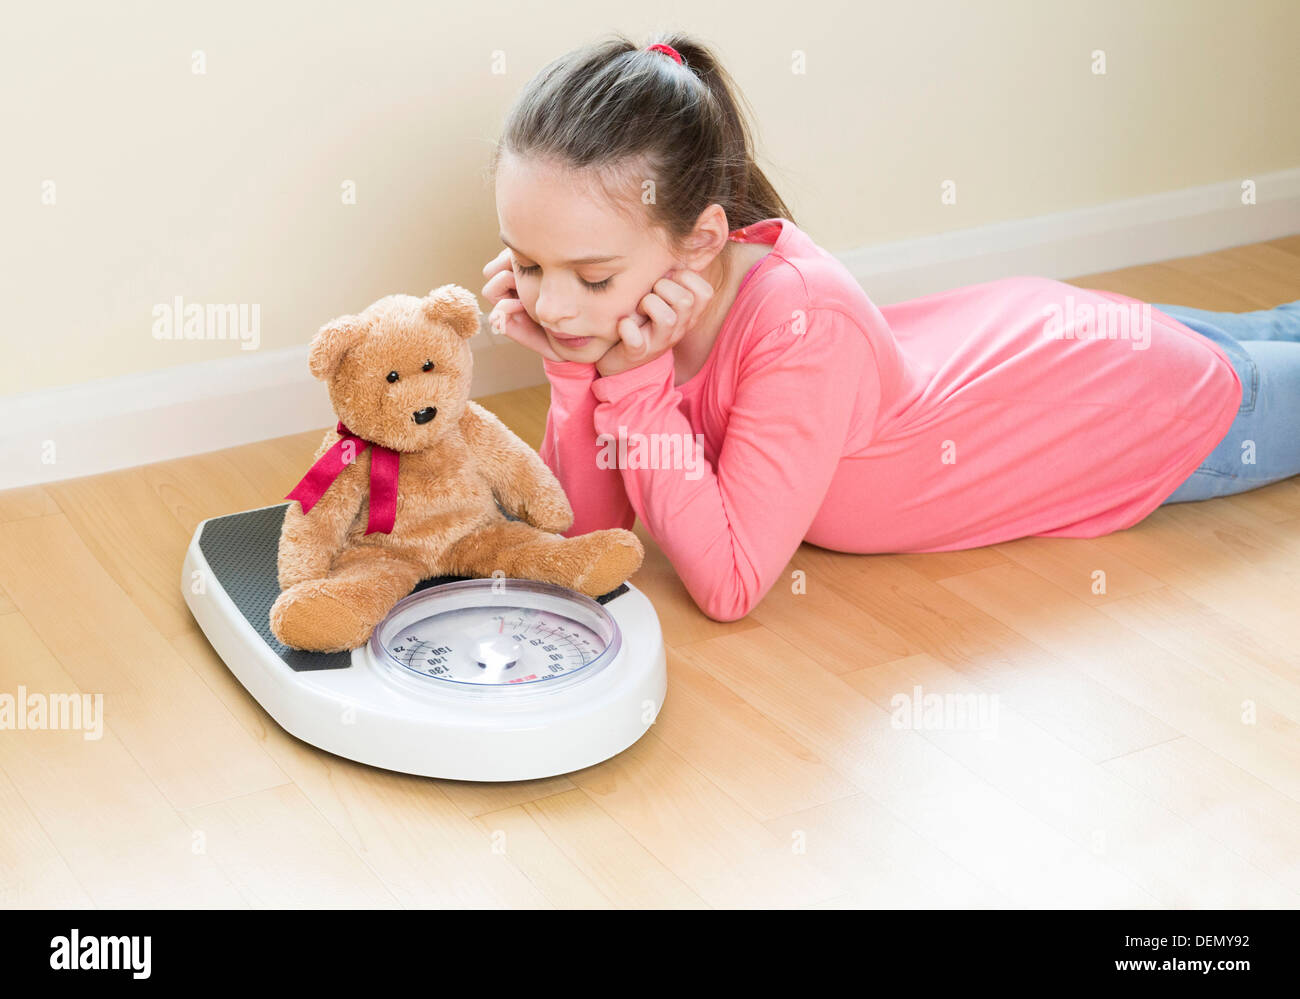 young girl weighing her teddy bear Stock Photo